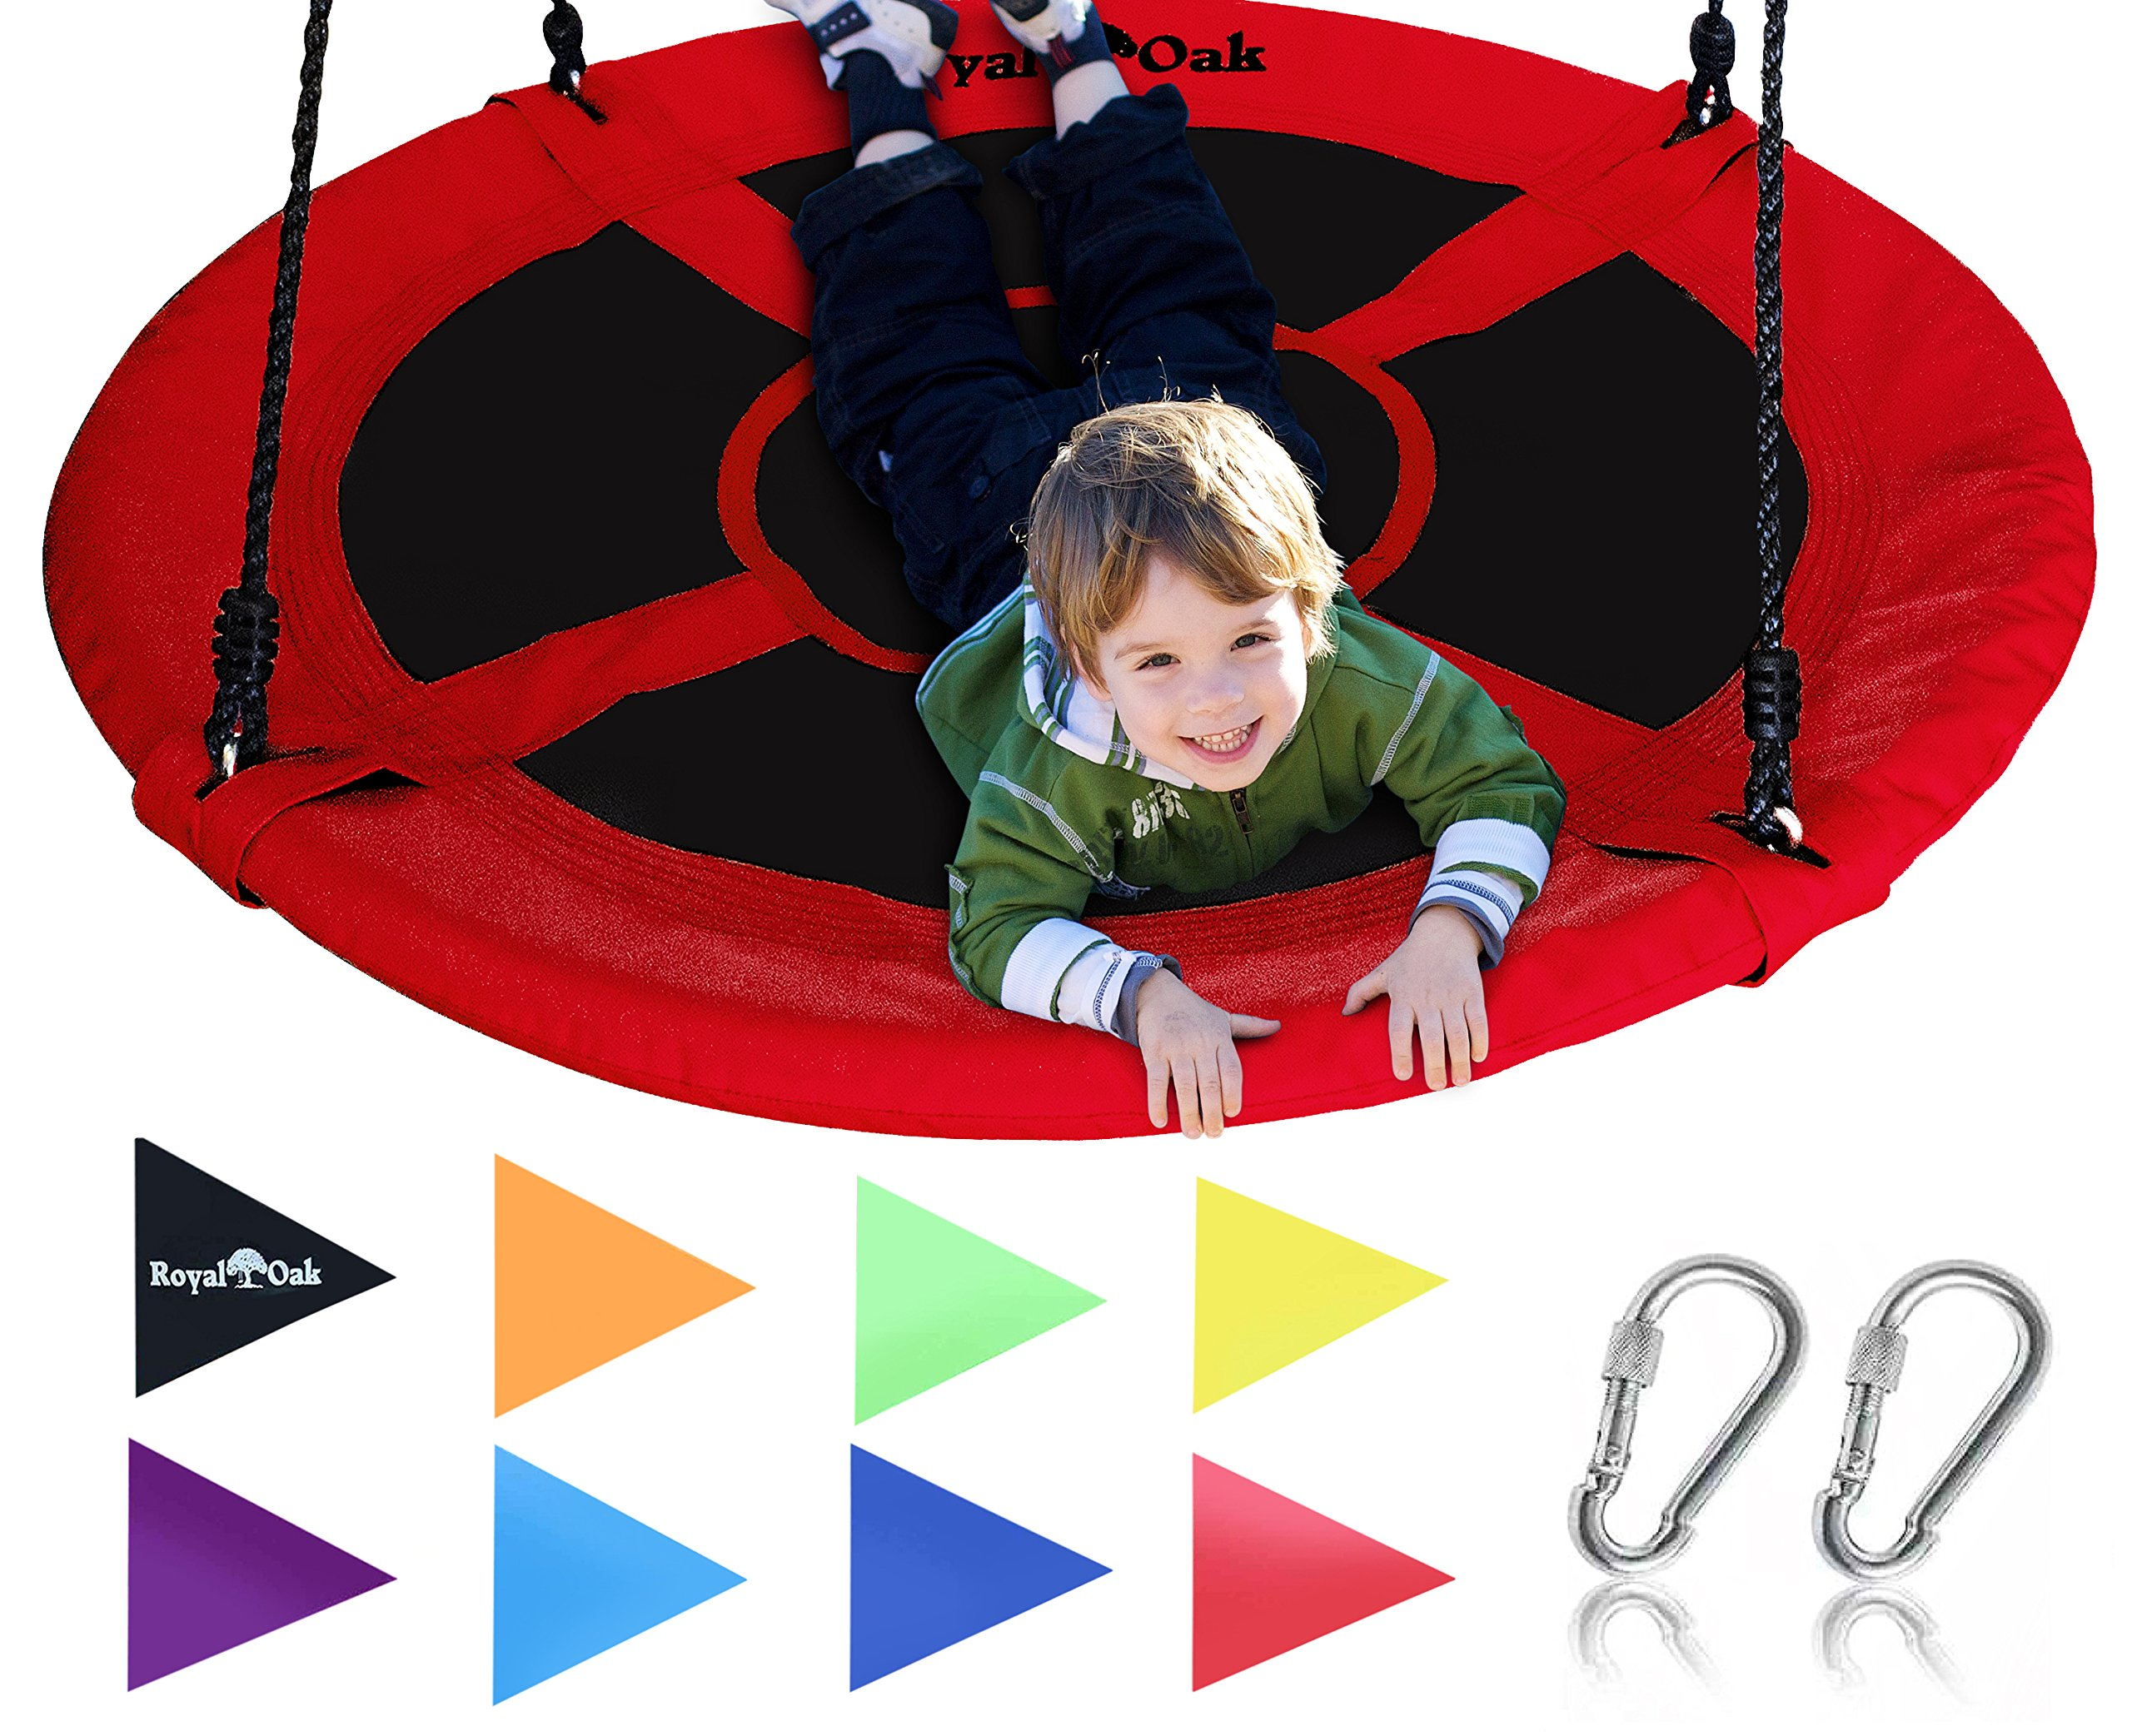 Giant 40'' Saucer Tree Swing in Elite Red - 400 lb Weight Capacity - Durable Steel Frame, Waterproof - Adjustable Ropes - Easy to Install - Bonus Flag Set and 2 Carabiners - Non-Stop Fun for Kids!